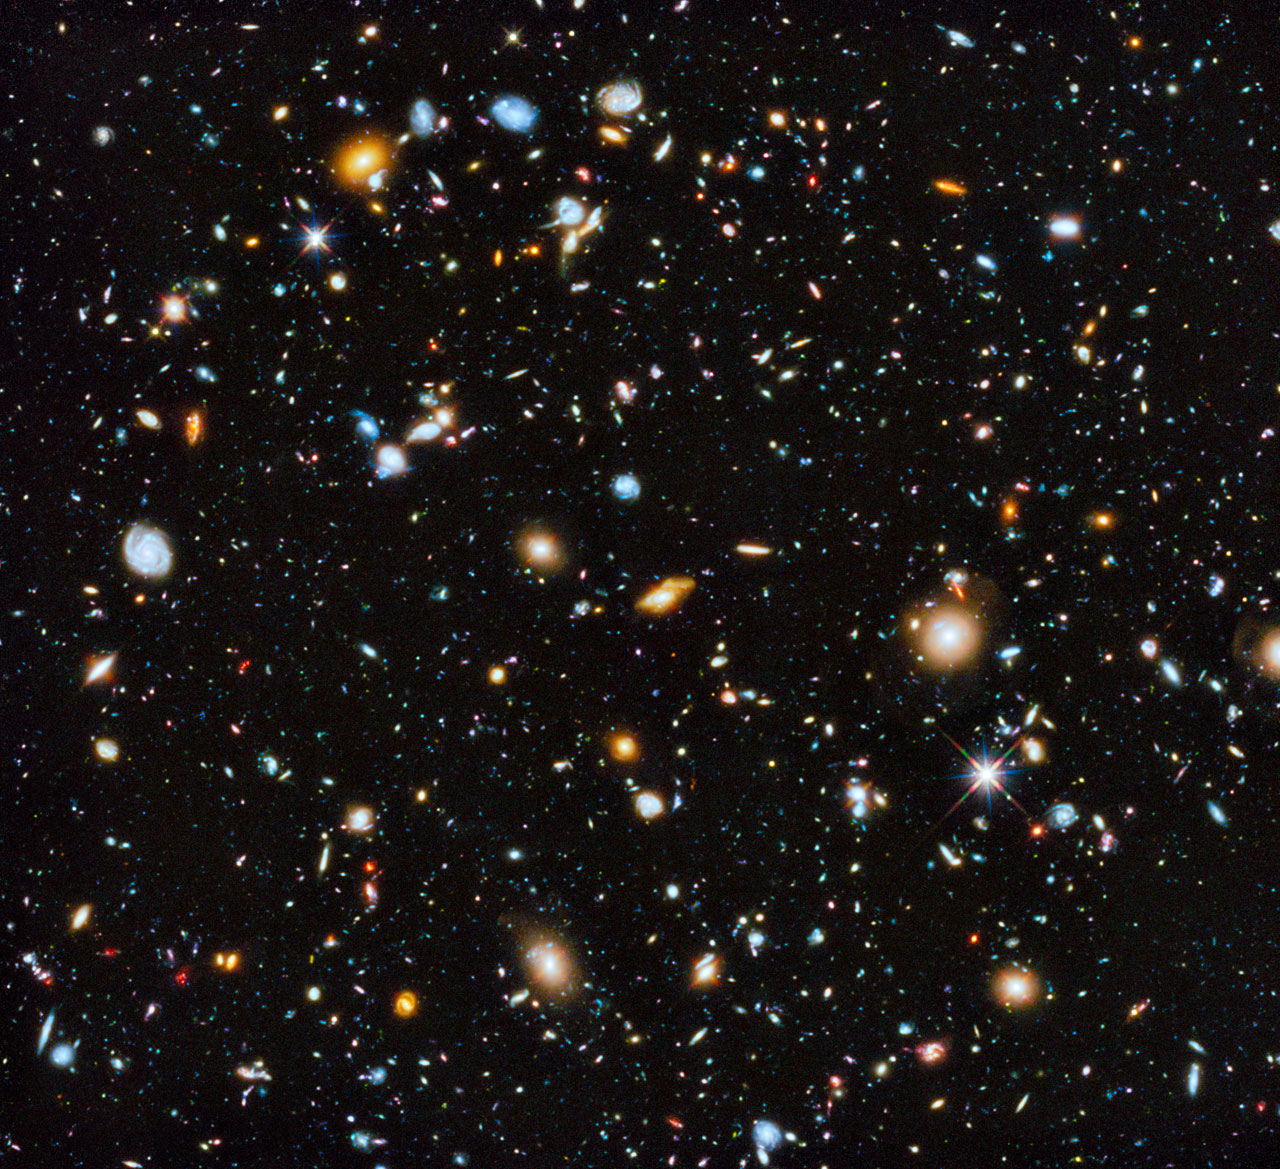 The New and Improved Hubble Ultra Deep Field